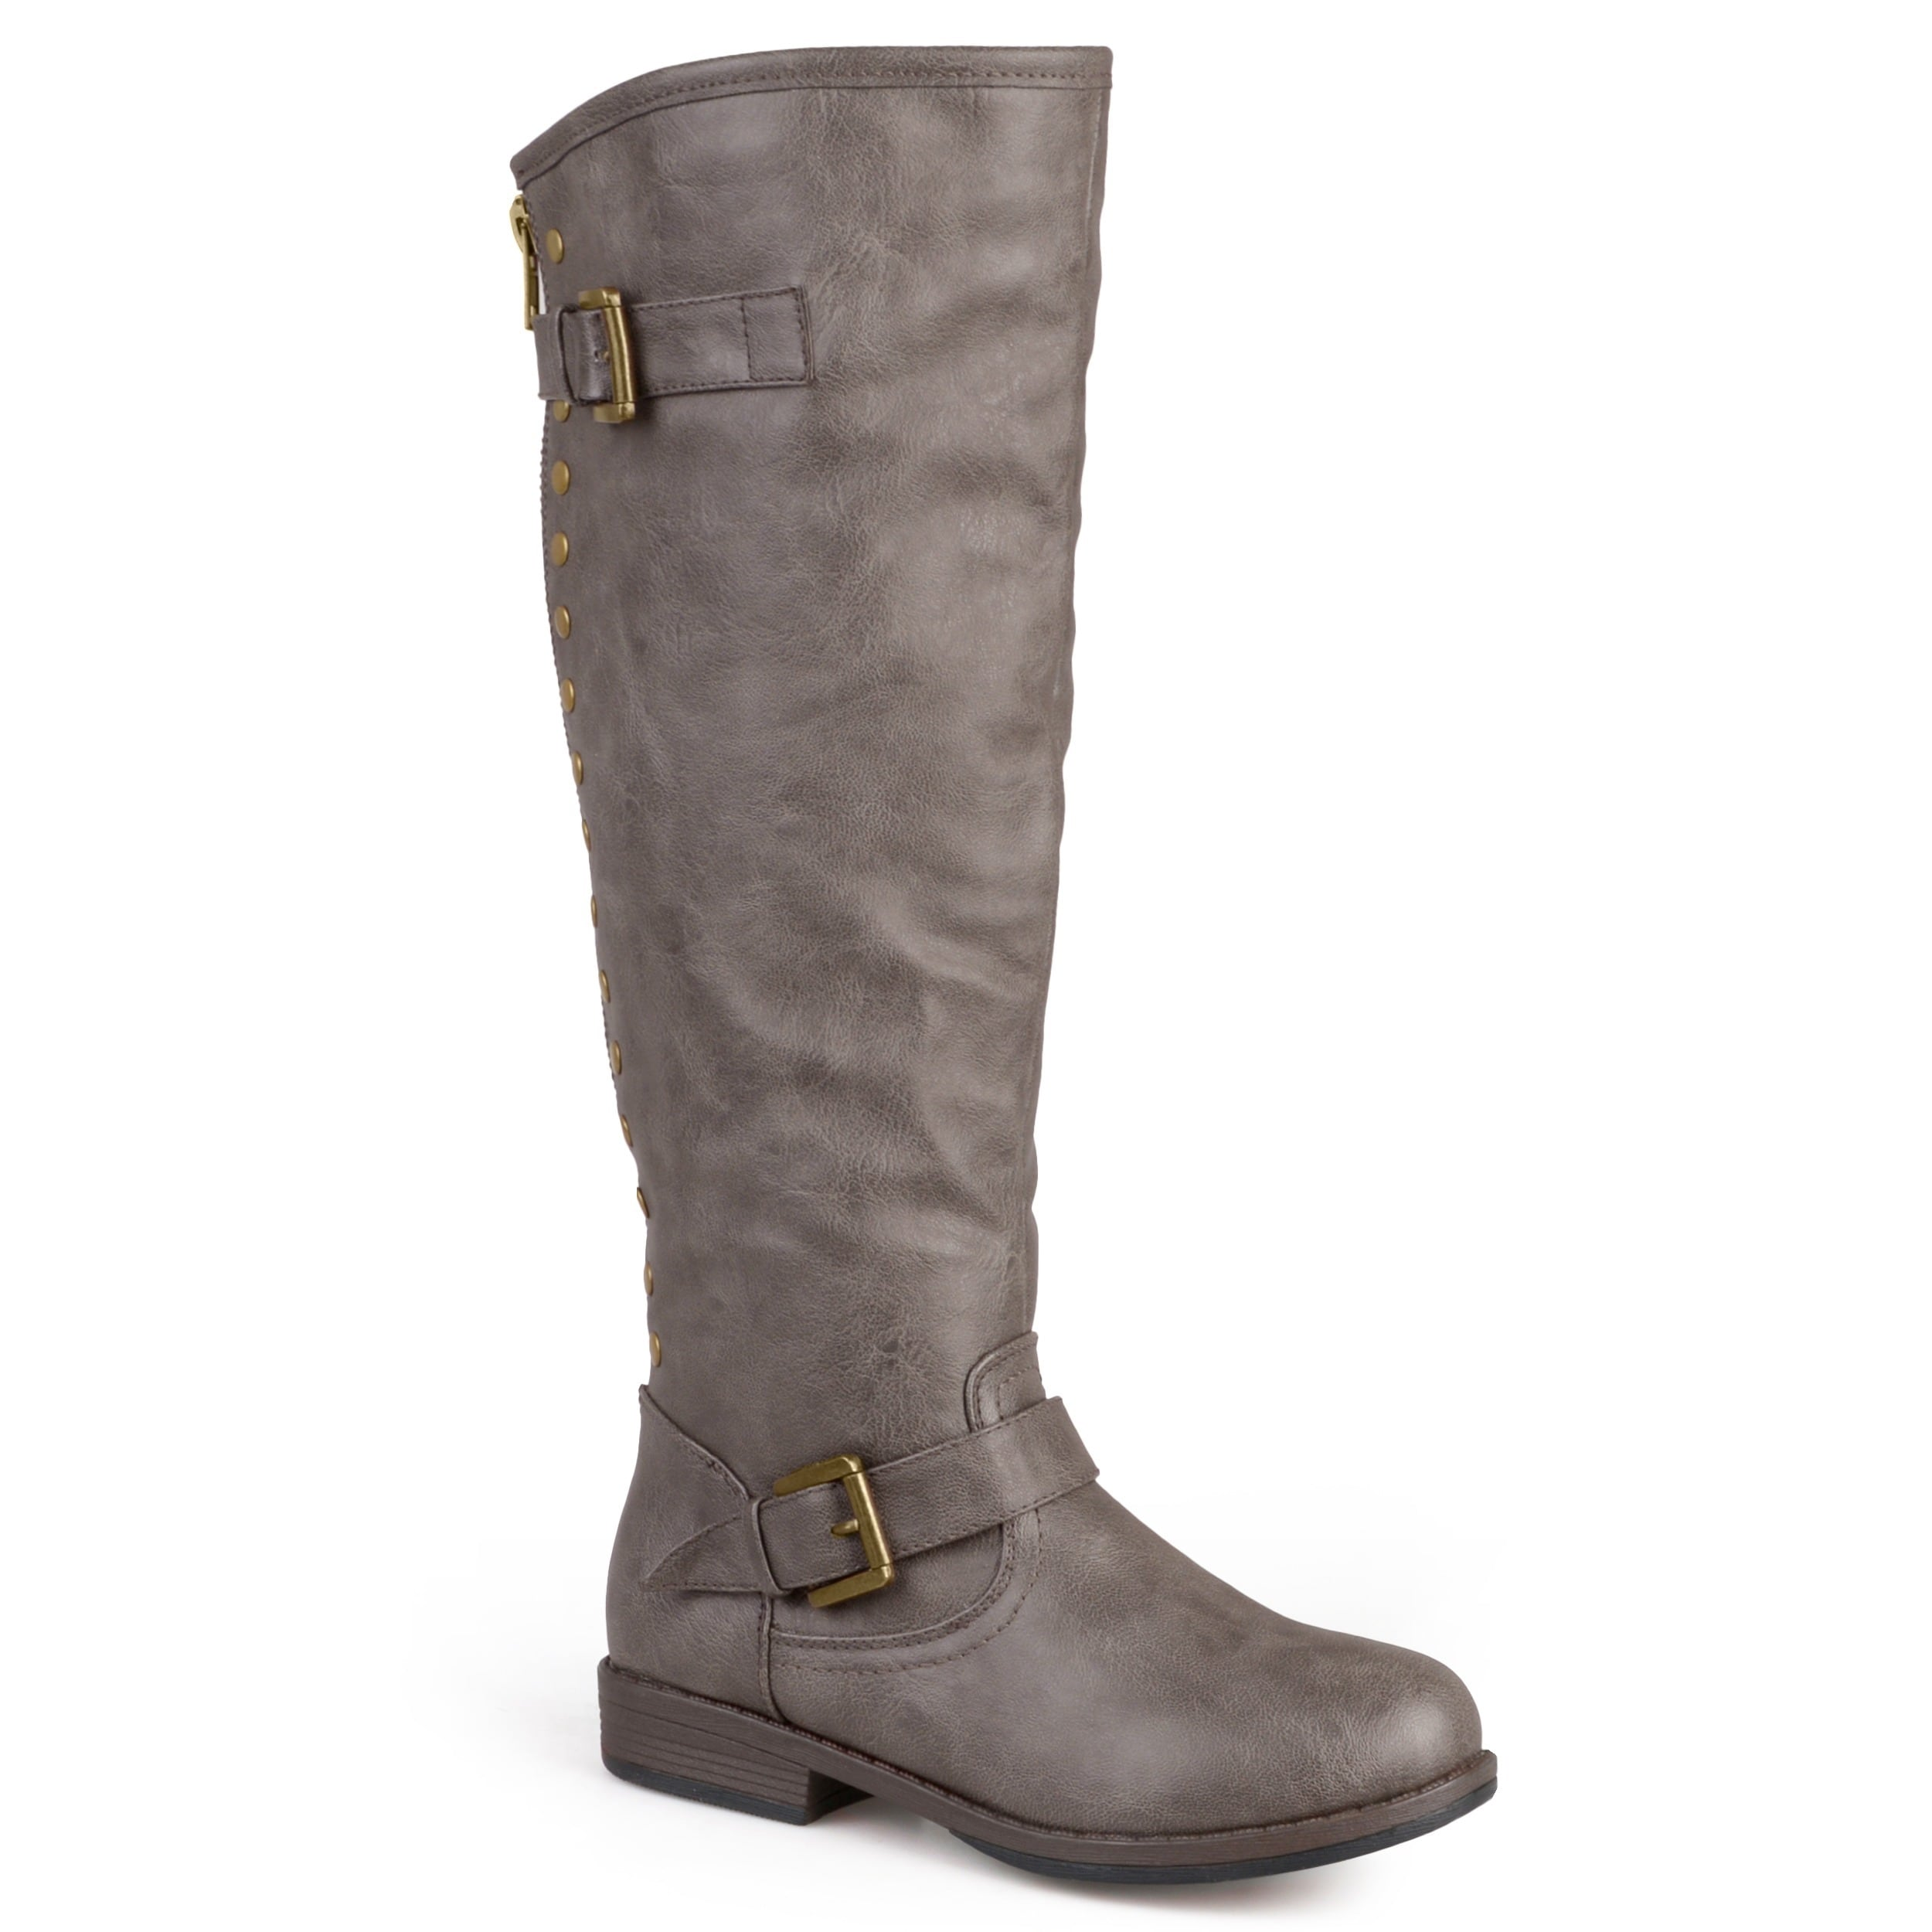 Curvy Fashionista Wide Calf Boots and well made wide calf boots